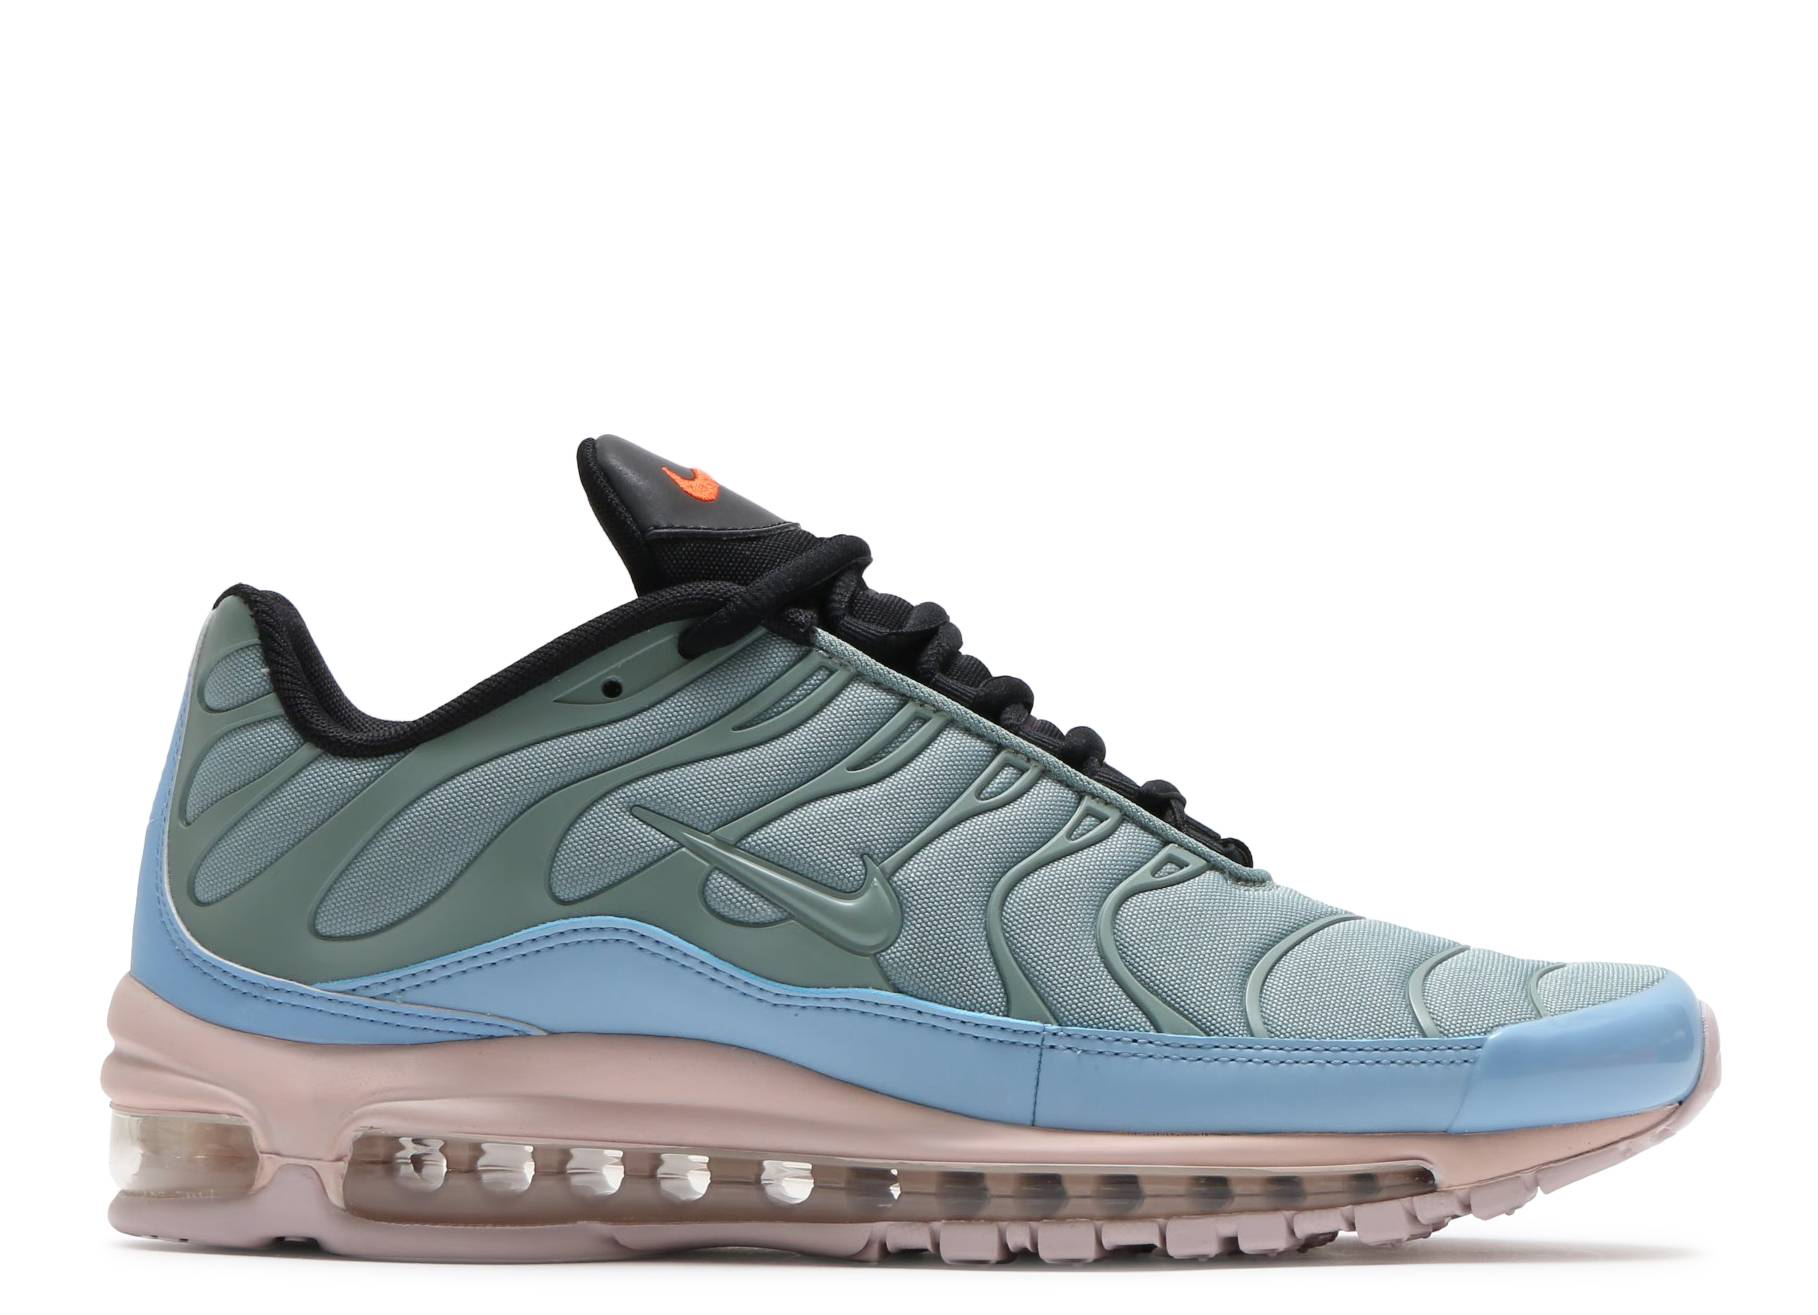 quality design 8b187 c2c3d AIR MAX 97 / PLUS